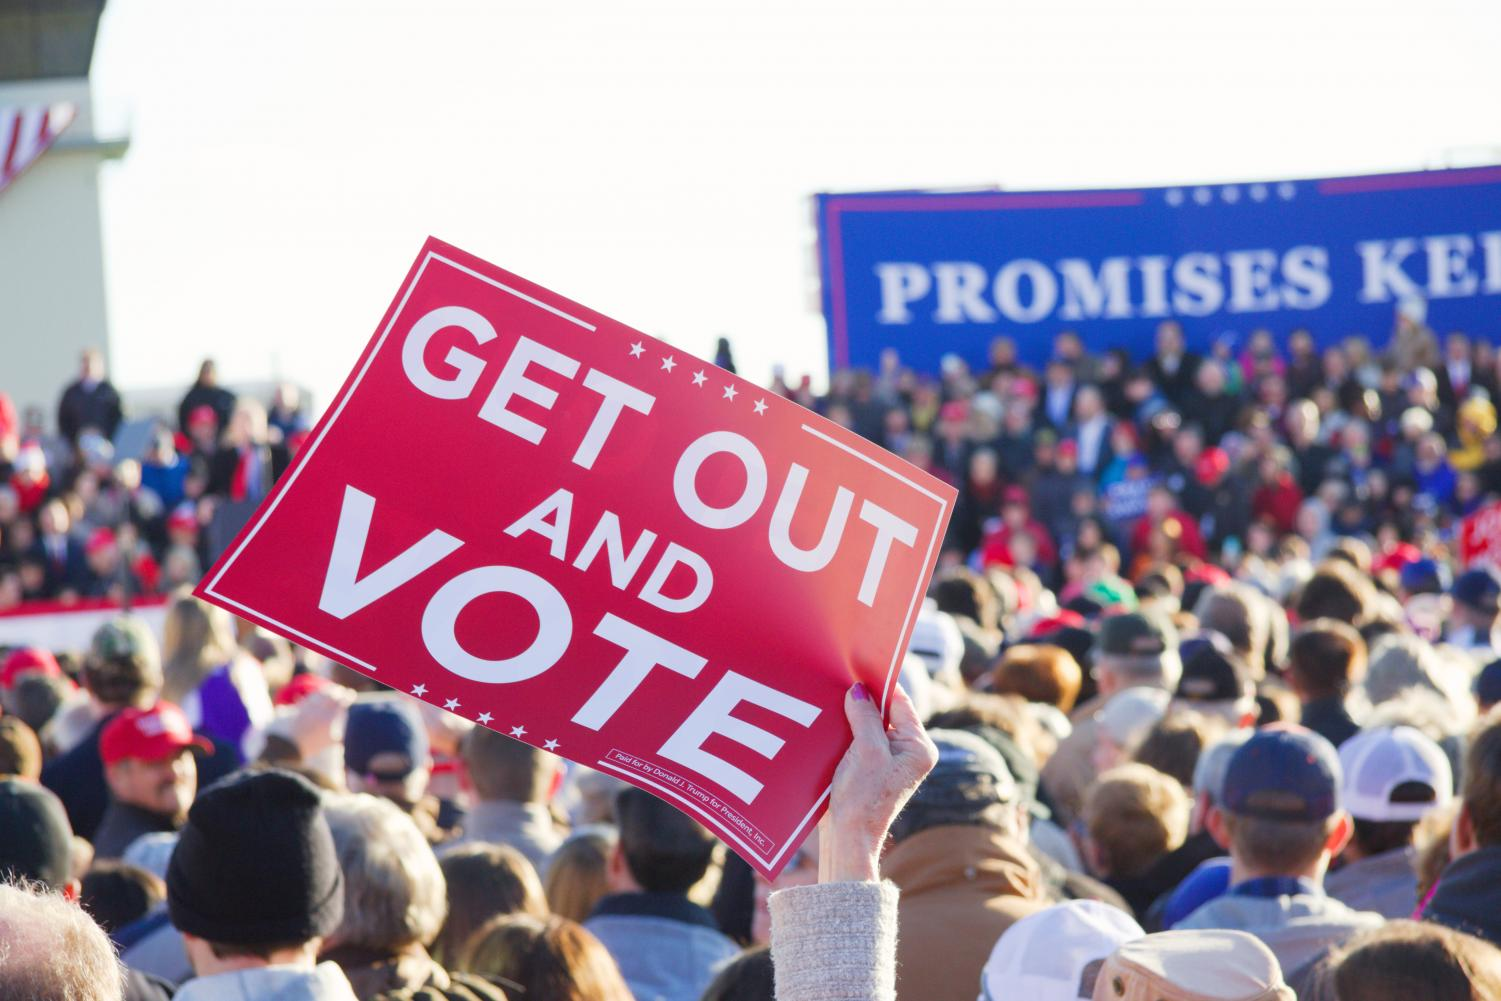 The voter registration drive is intended to encourage students to 'get out and vote.'